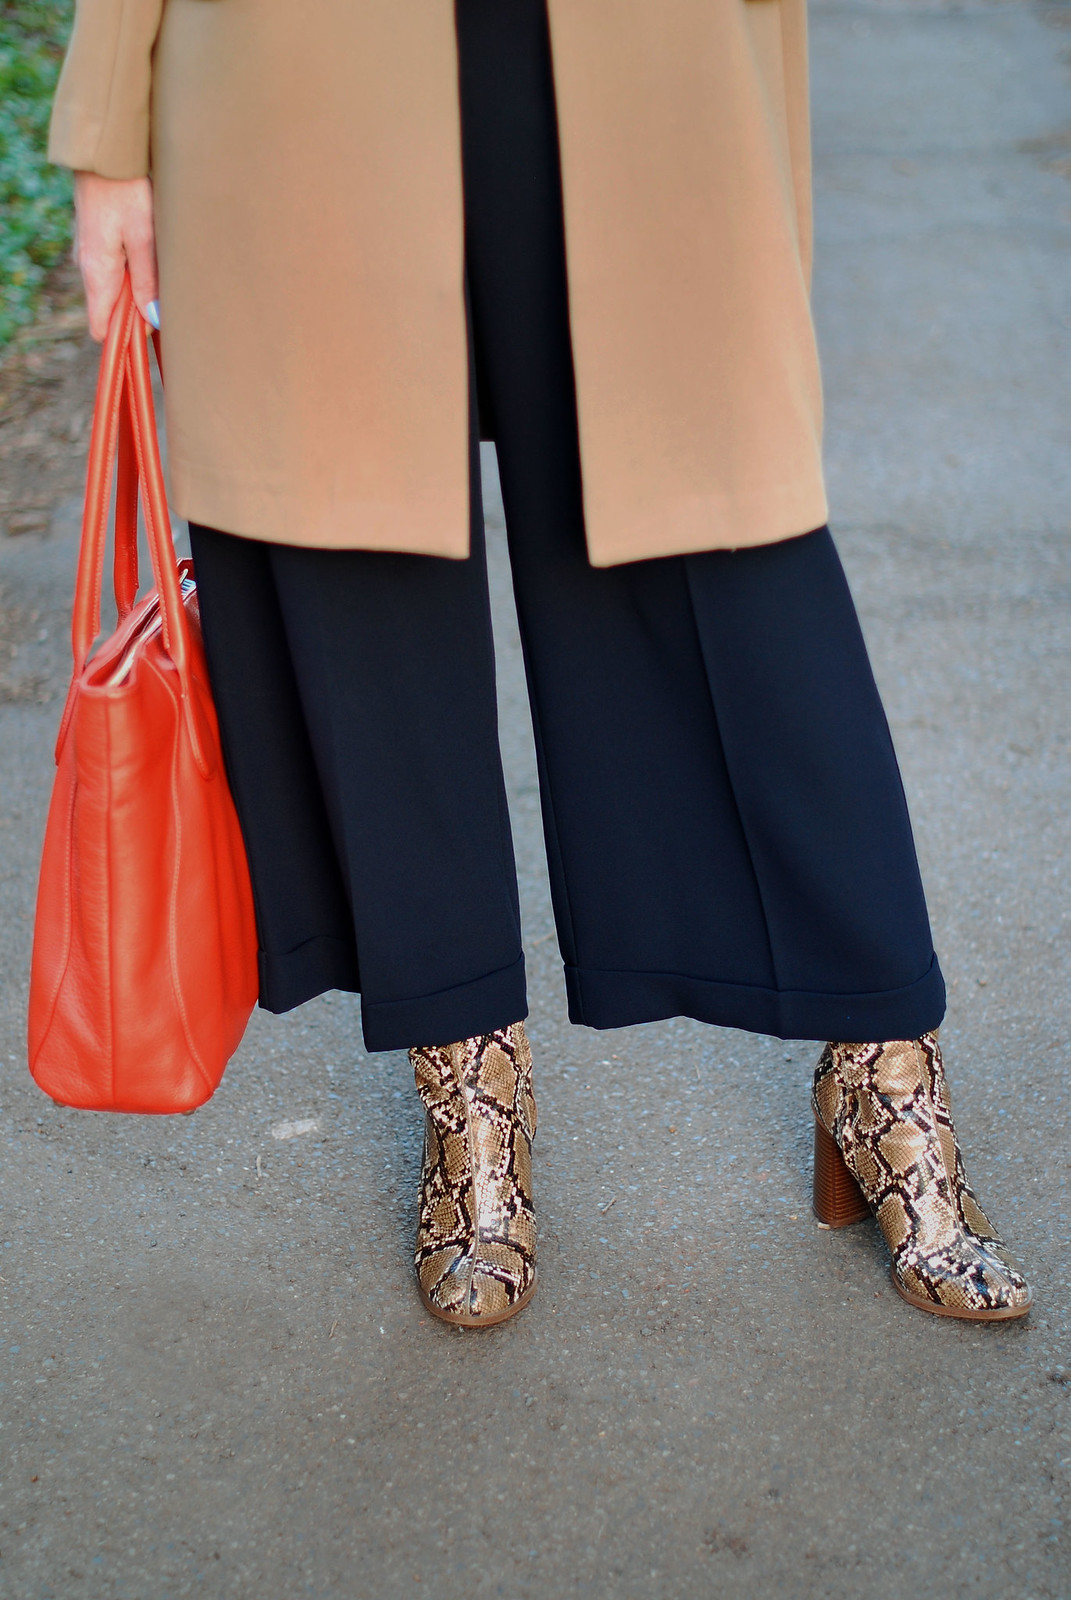 SS16 Smart style: Longline blazer with M&S Archive by Alexa culottes, snakeskin boots, orange tote | Not Dressed As Lamb